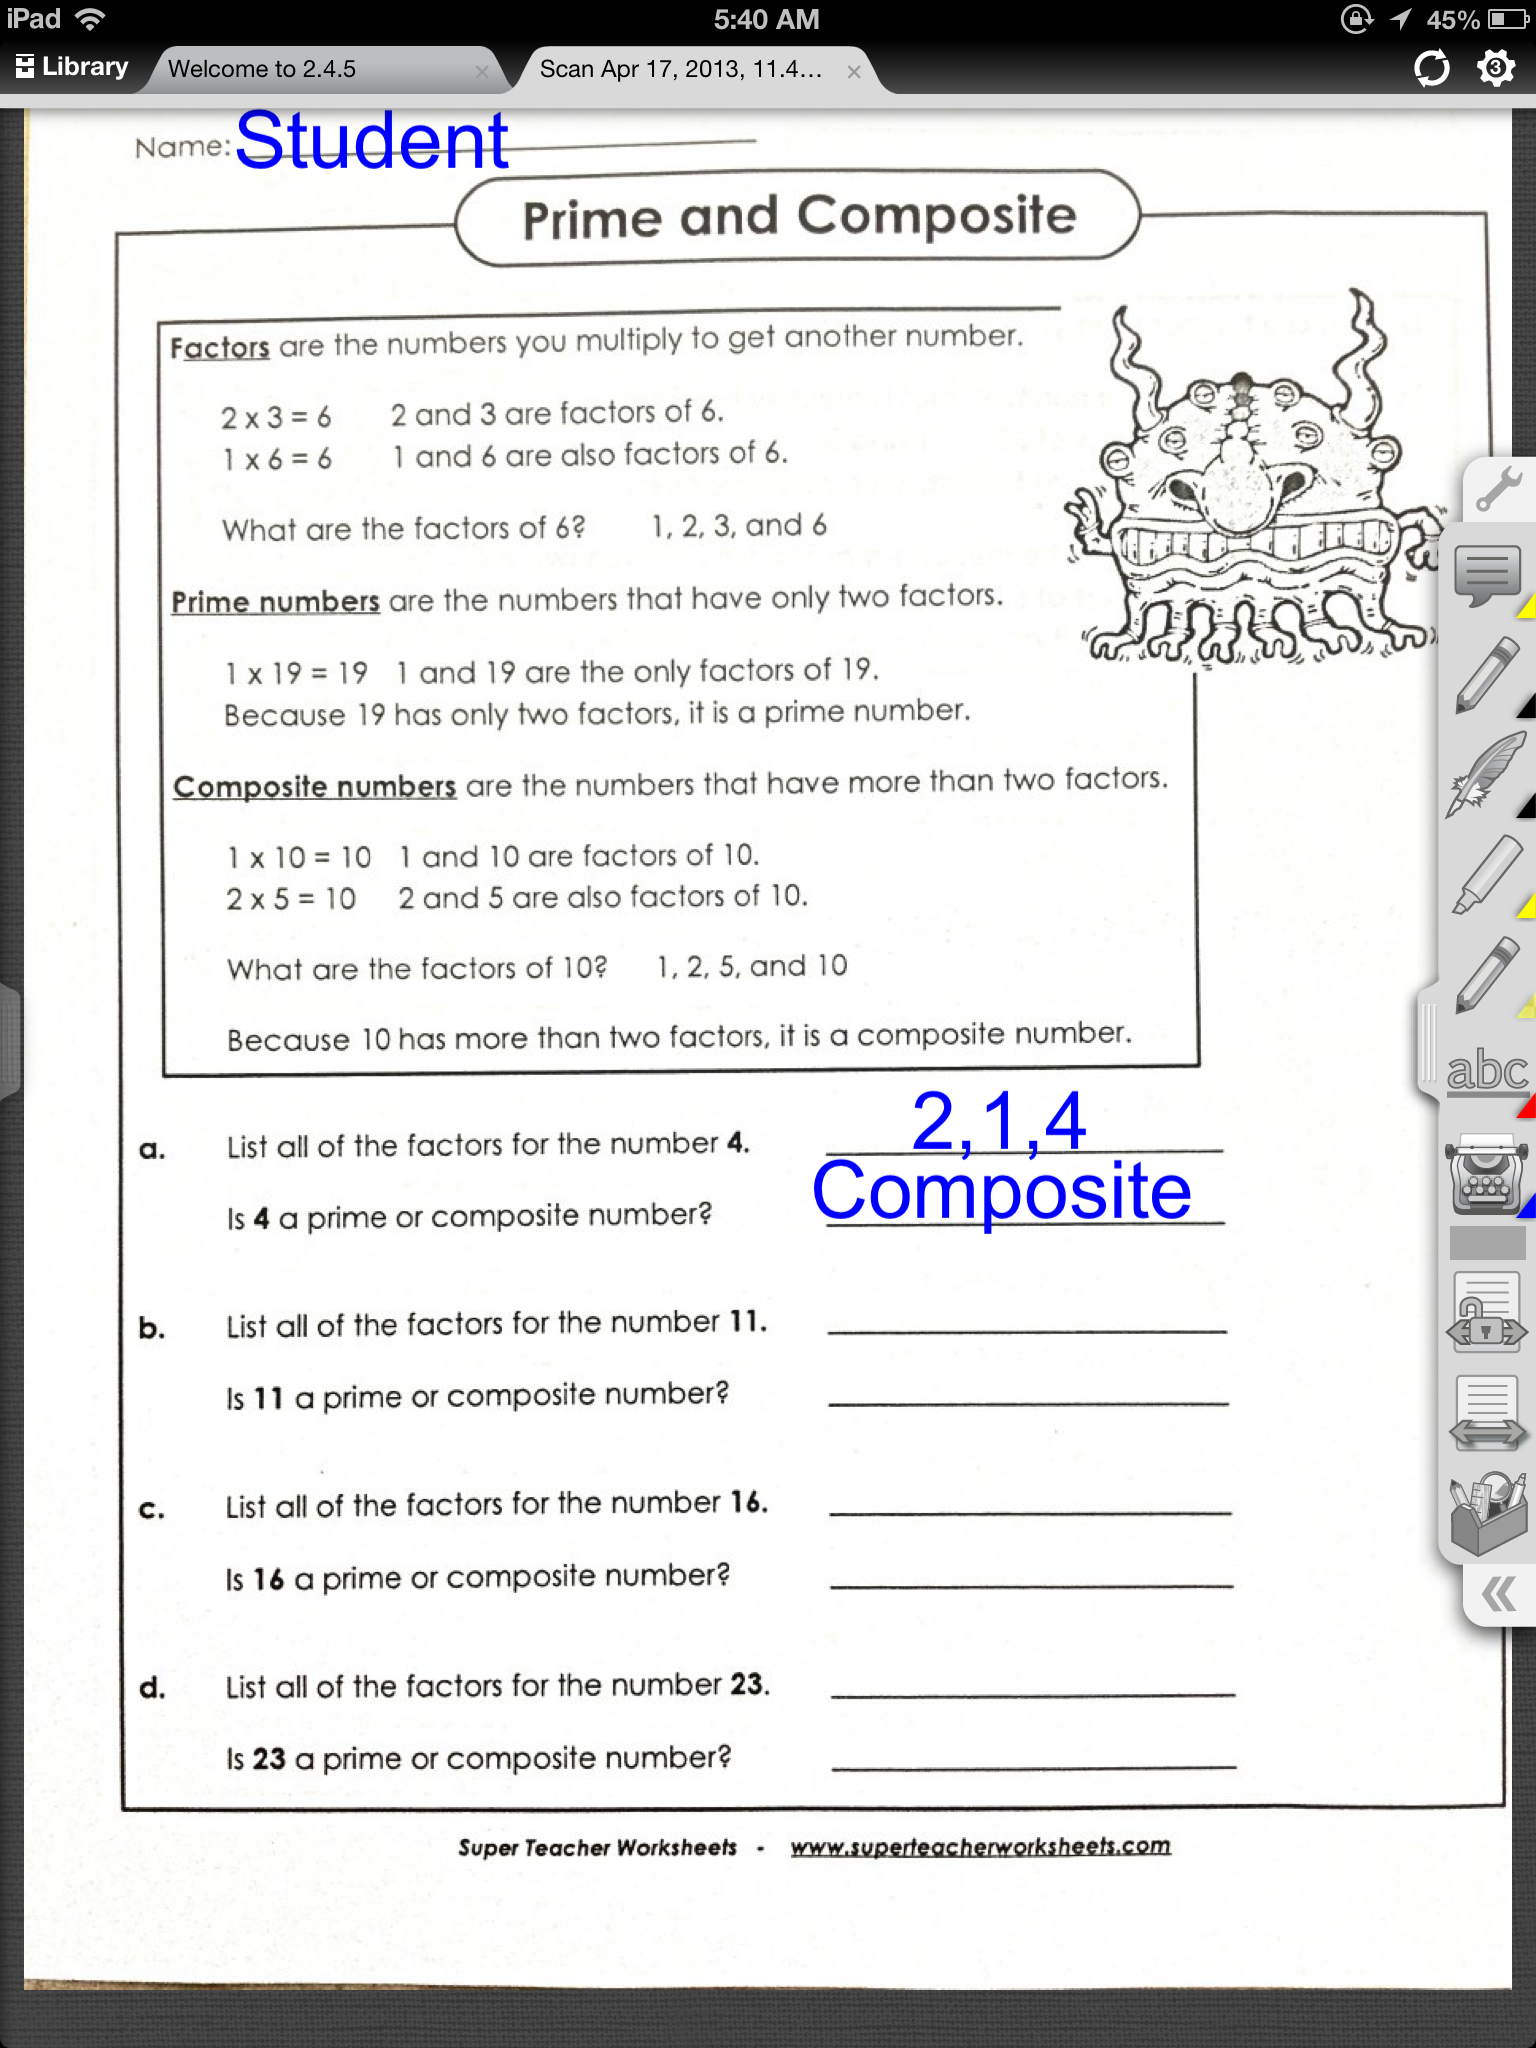 Printables Music Appreciation Worksheets printables music appreciation worksheets safarmediapps iannotate app on sale for teacher week ots with pic1